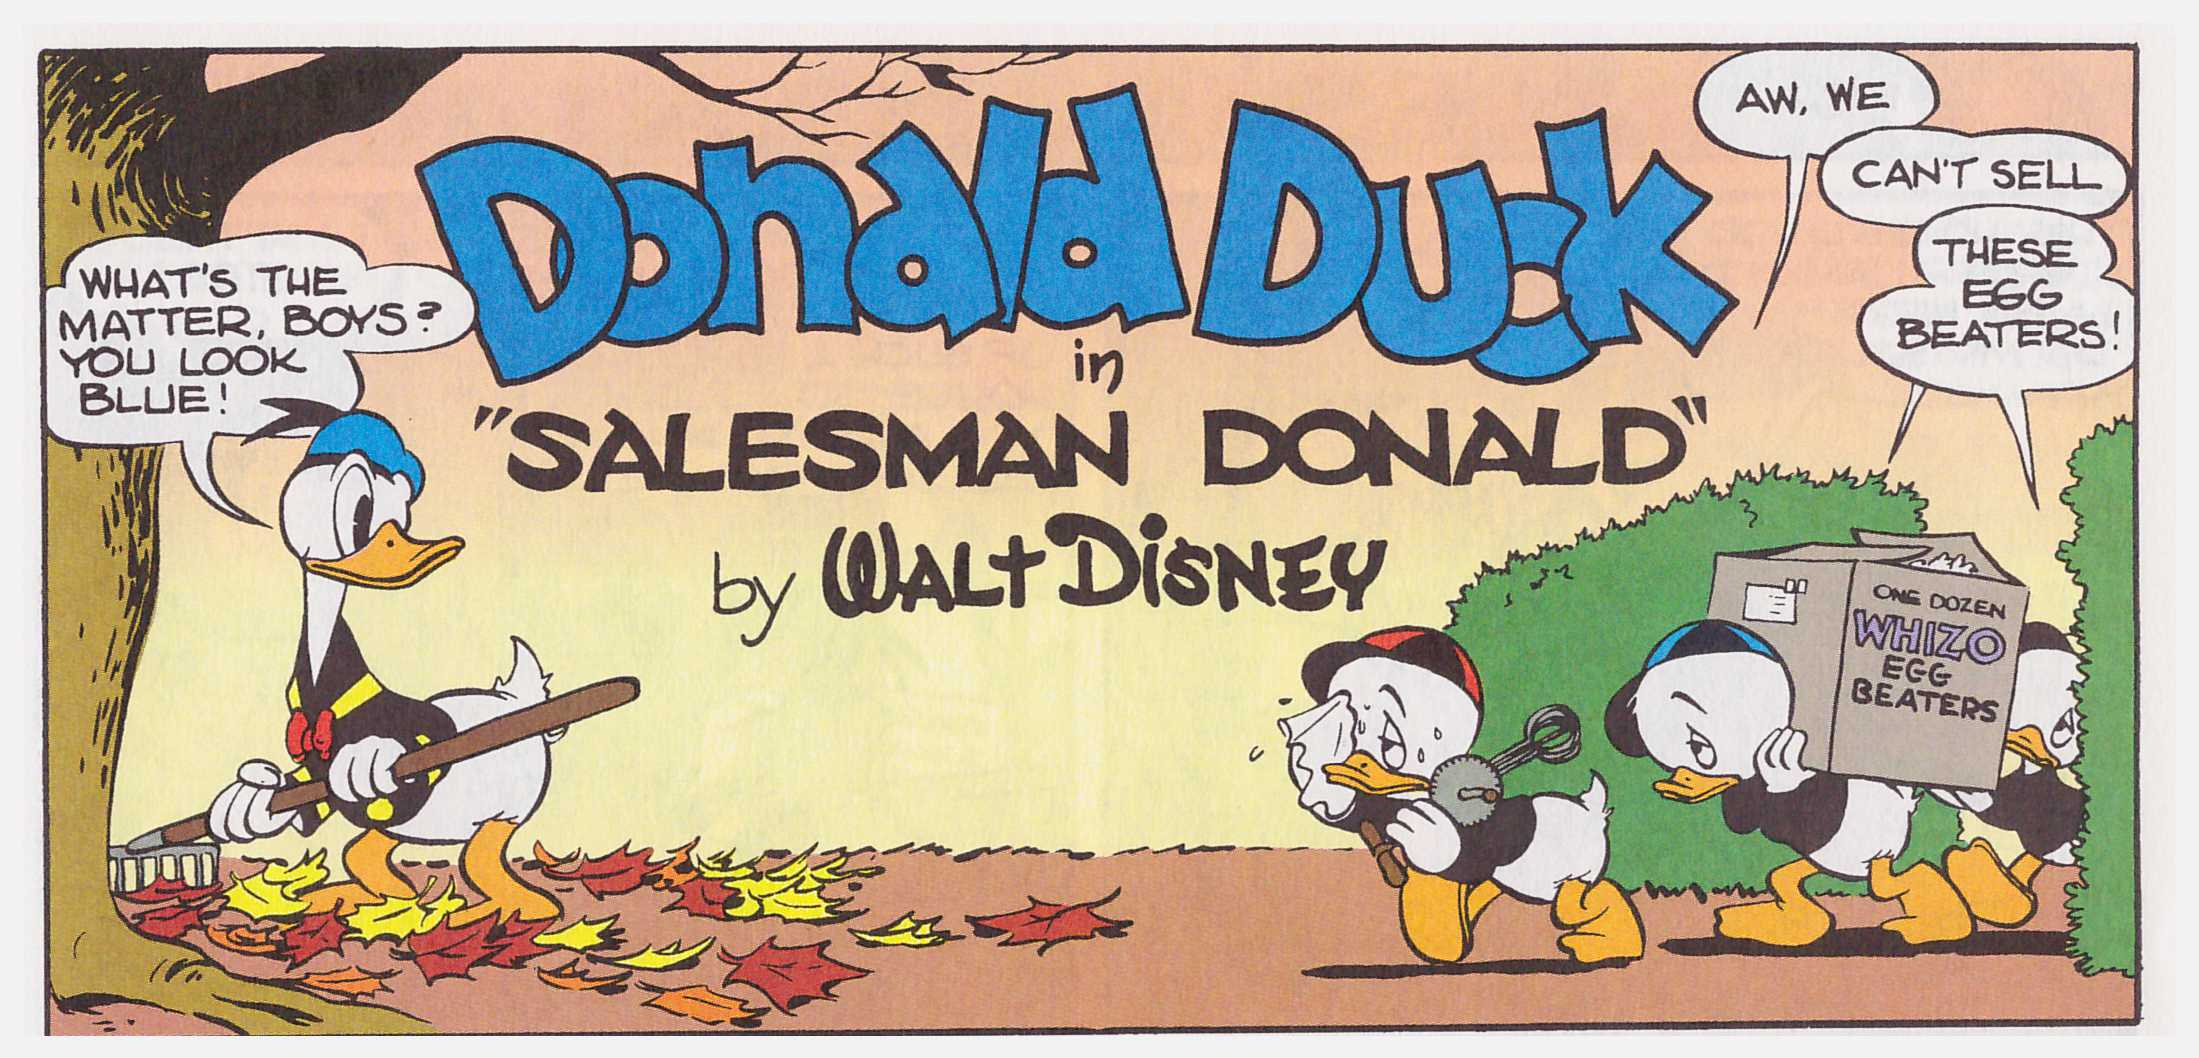 Walt Disney Comics and Stories by Carl Barks vol 2 review